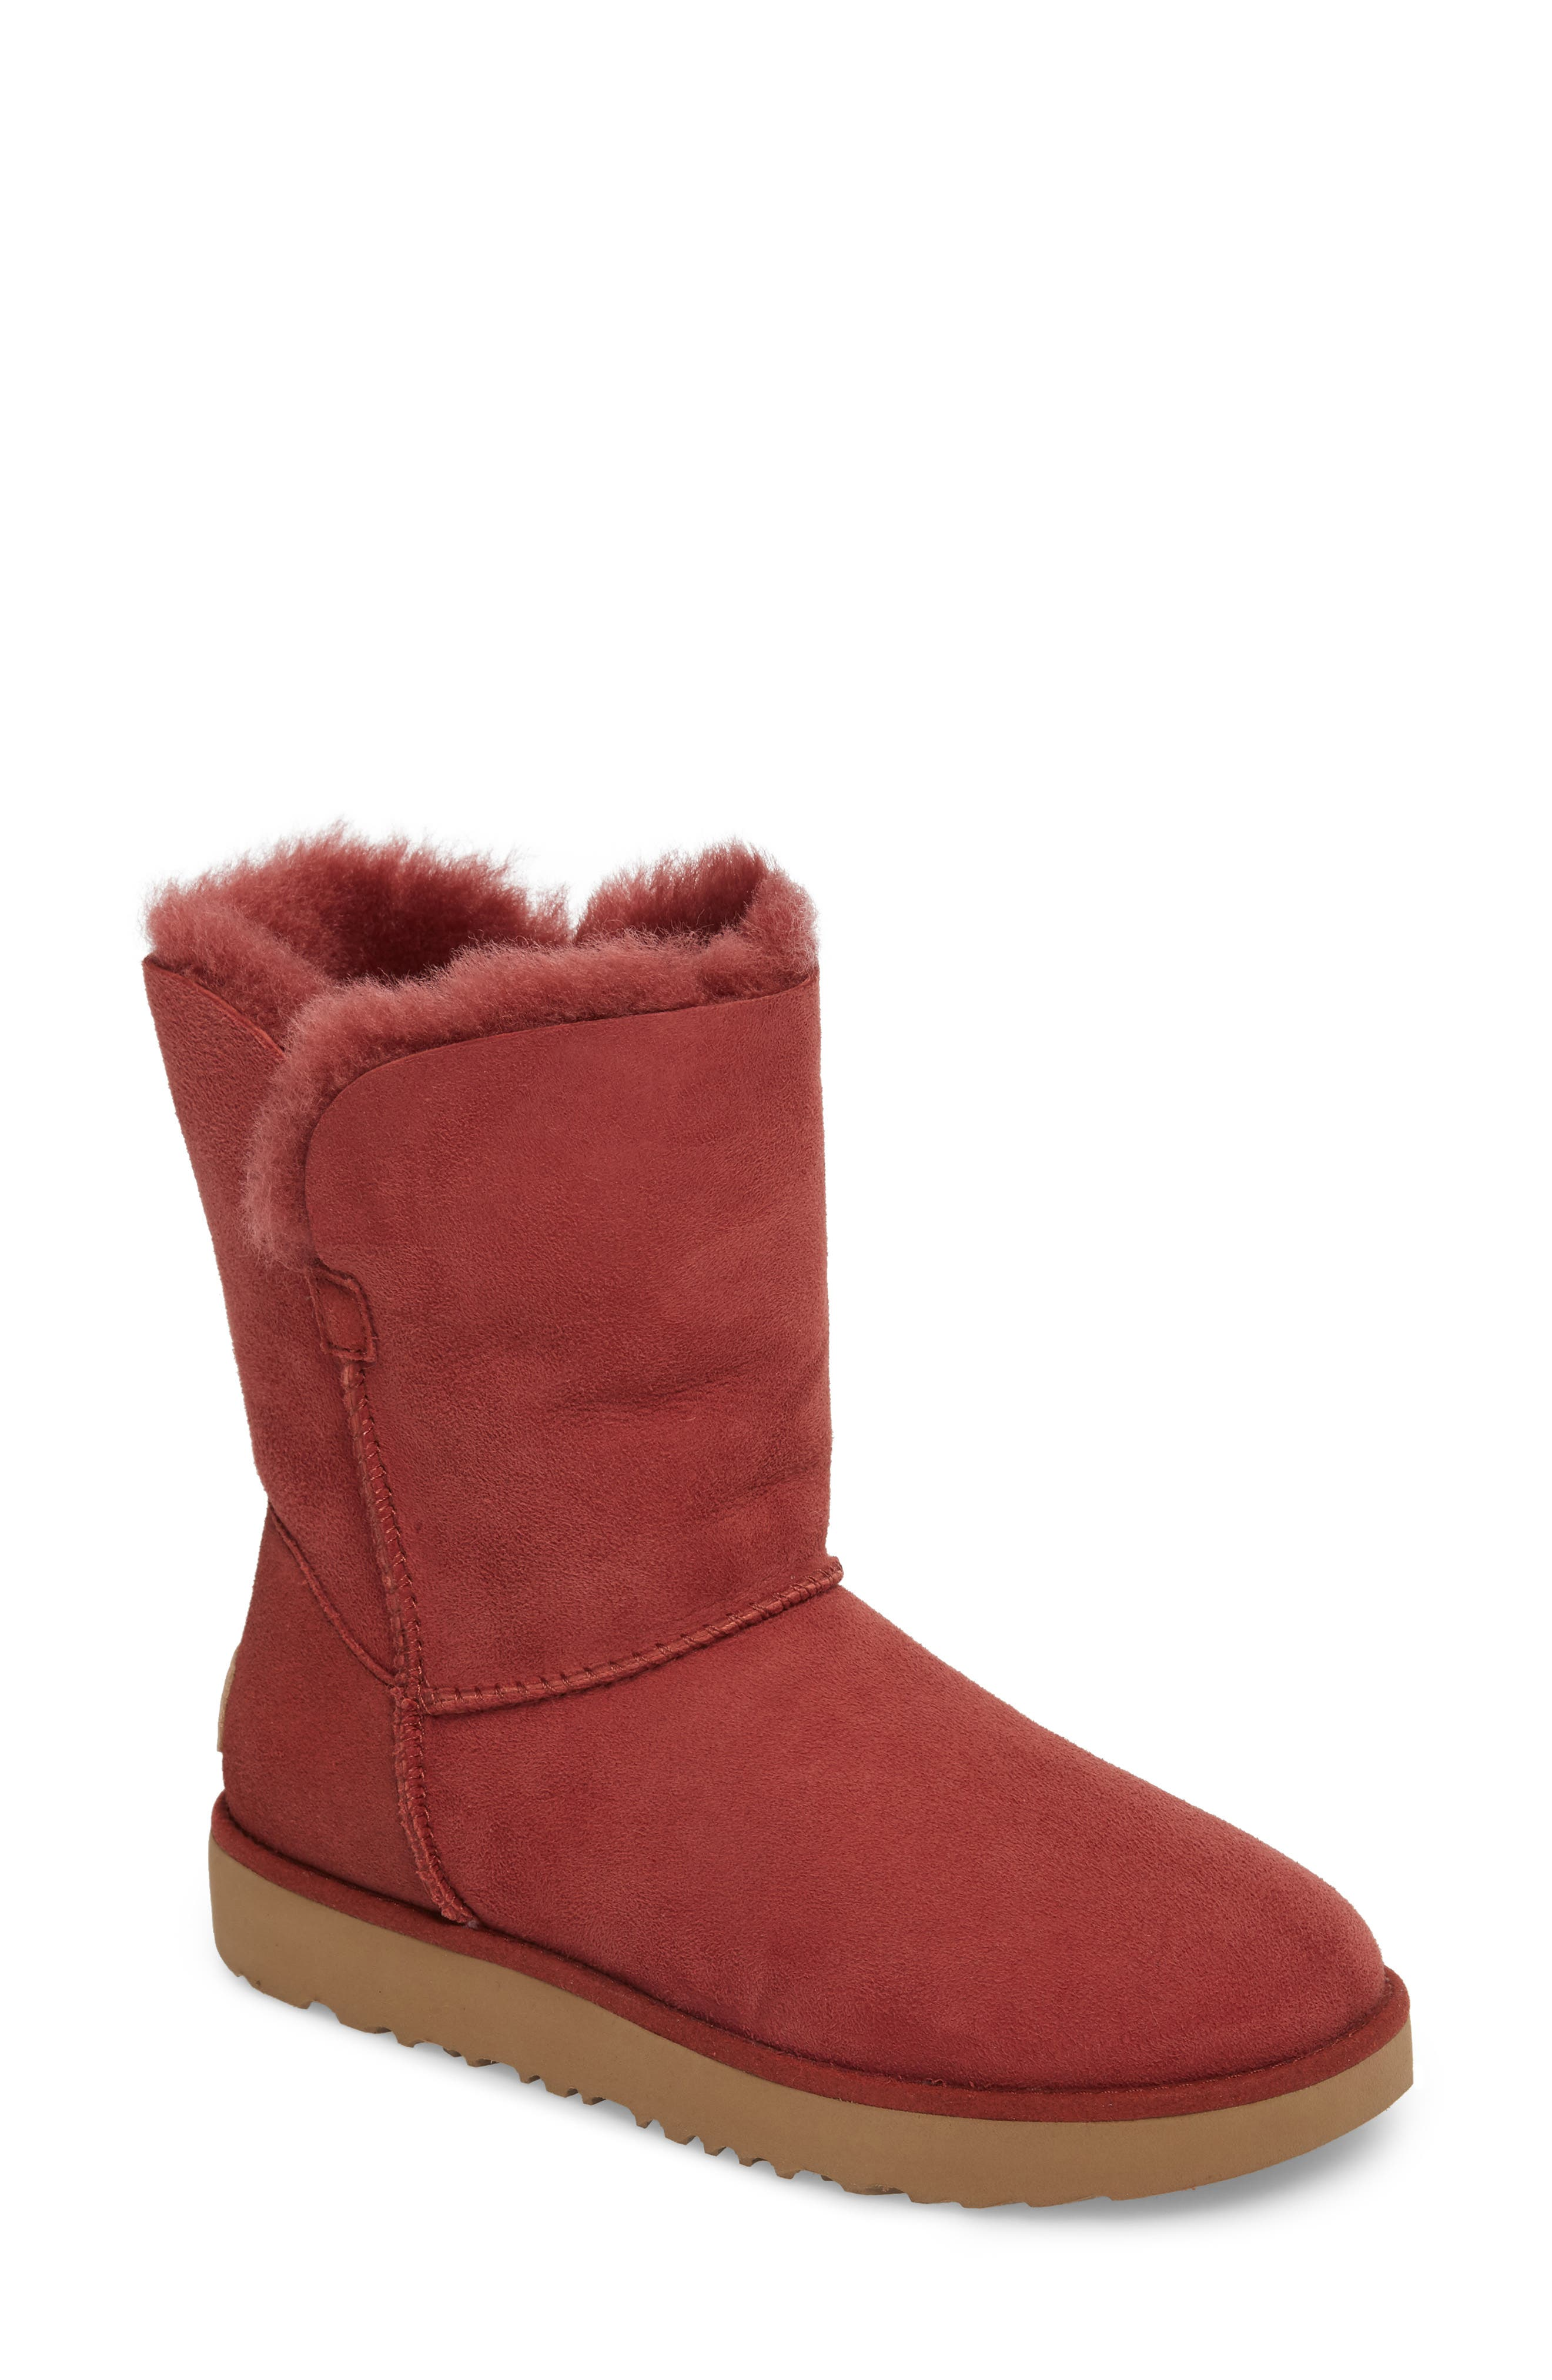 Classic Cuff Short Boot,                             Main thumbnail 1, color,                             Red Clay Suede